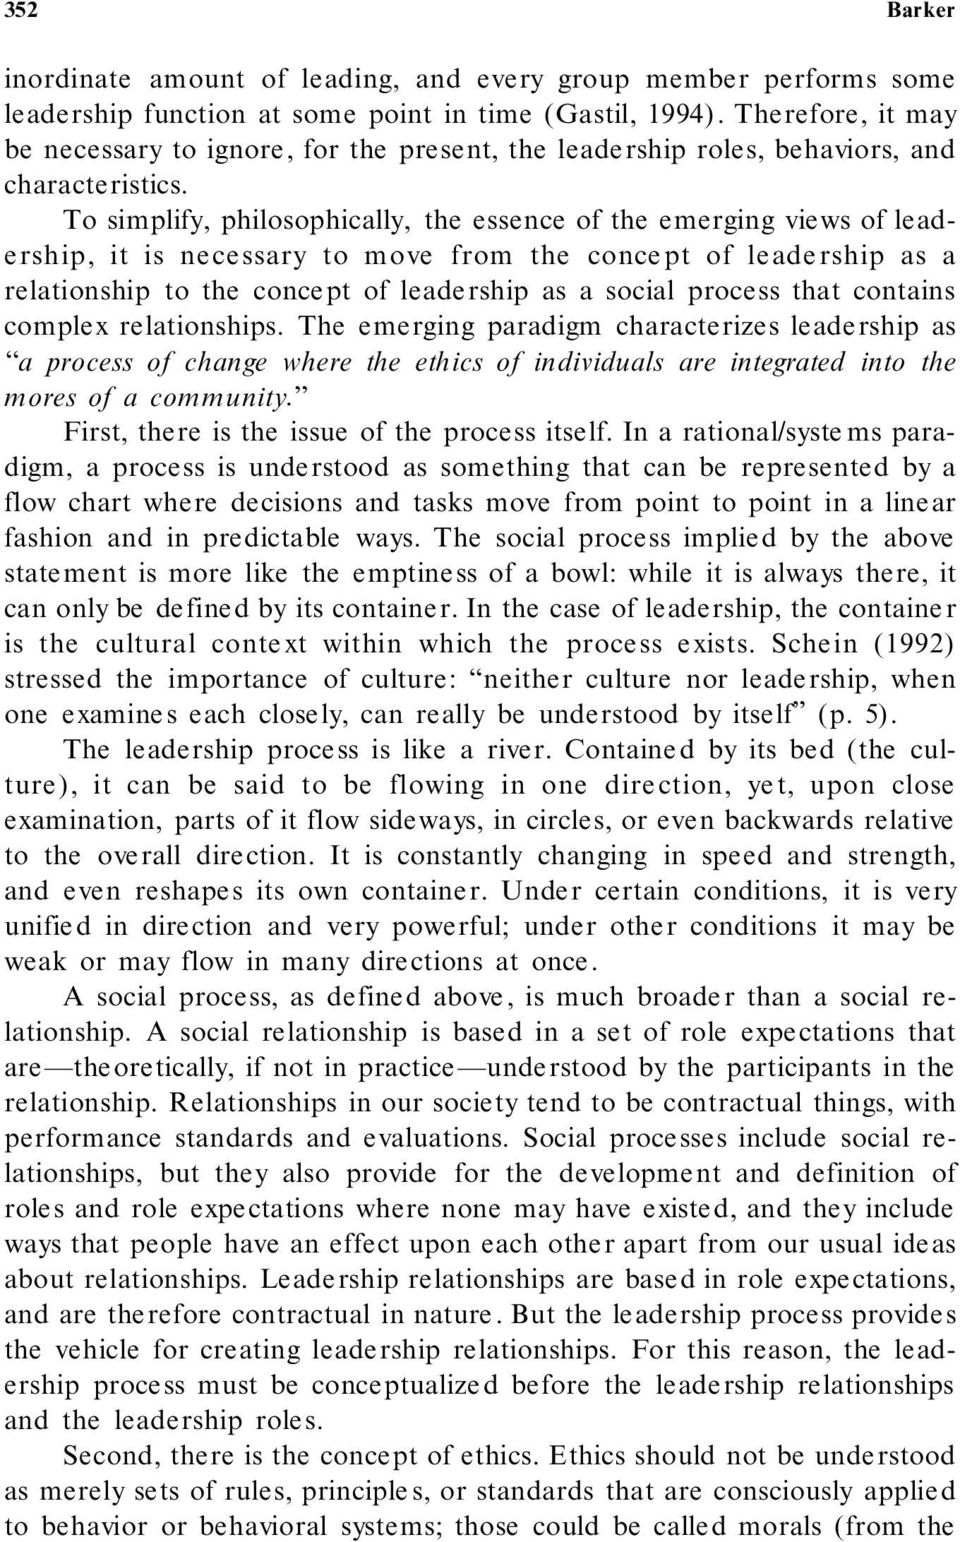 To simplify, philosophically, the essence of the e merging views of le ade rship, it is ne ce ssary to move from the conce pt of le ade rship as a relationship to the conce pt of leade rship as a